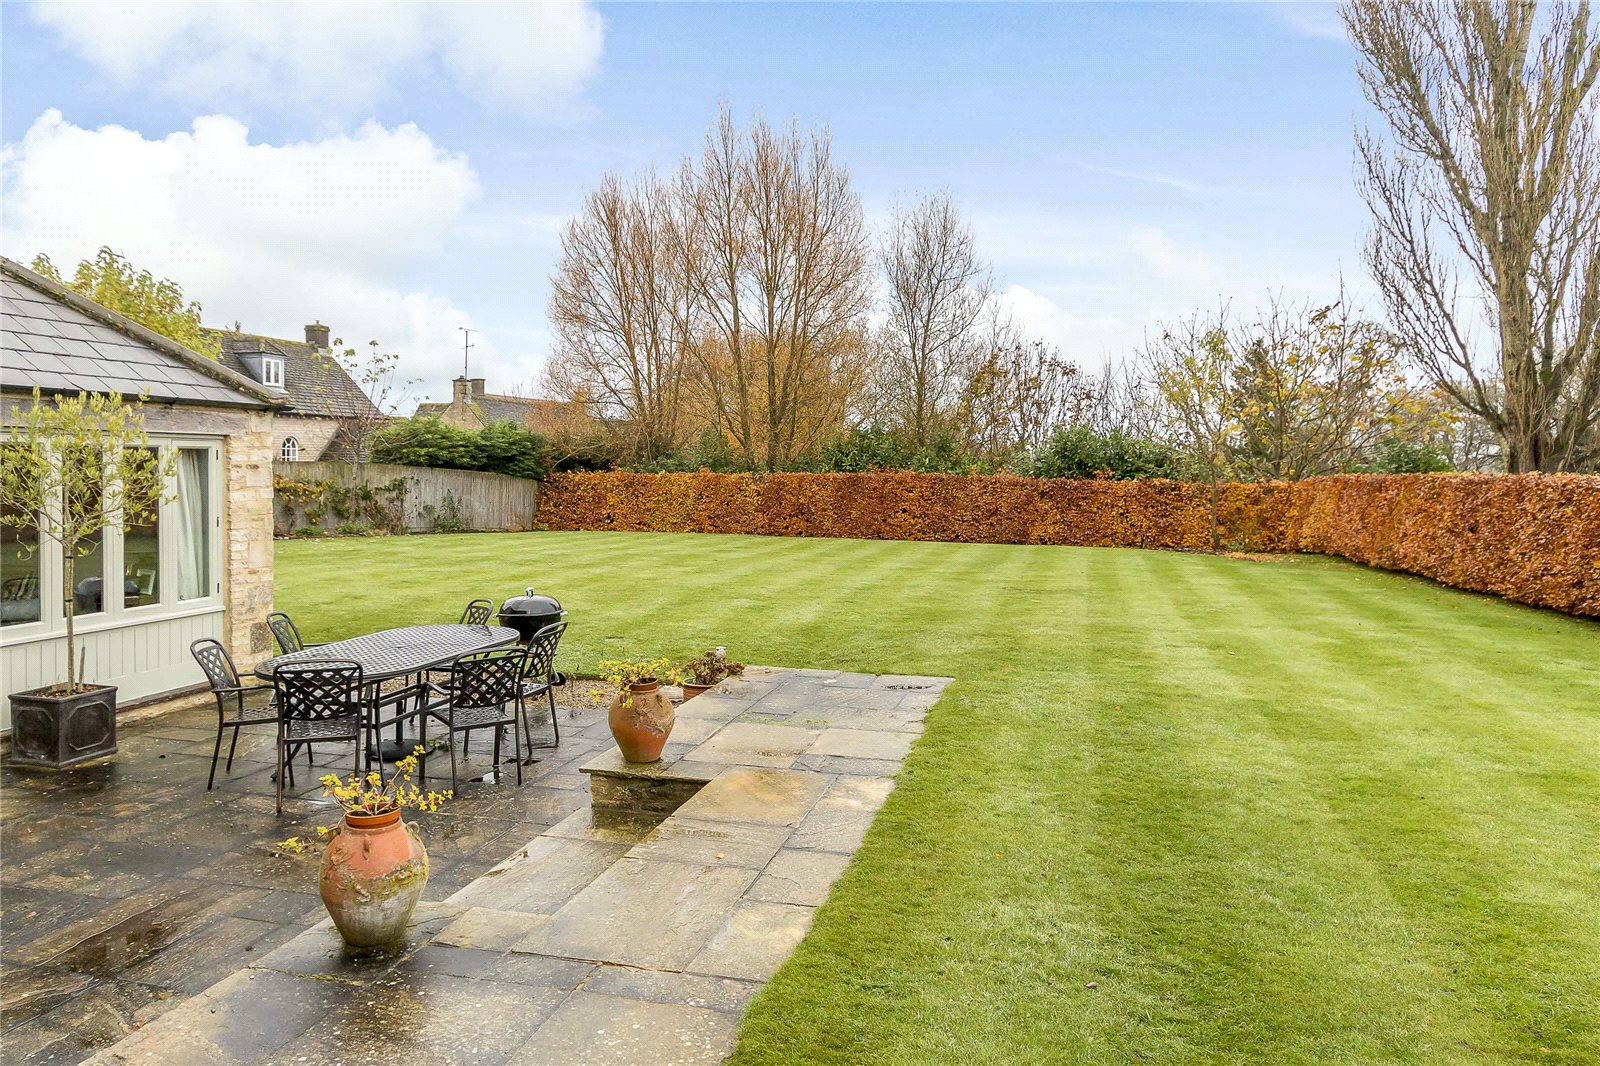 Additional photo for property listing at Lower Farm, Poole Keynes, Cirencester, Gloucestershire, GL7 Cirencester, Engeland